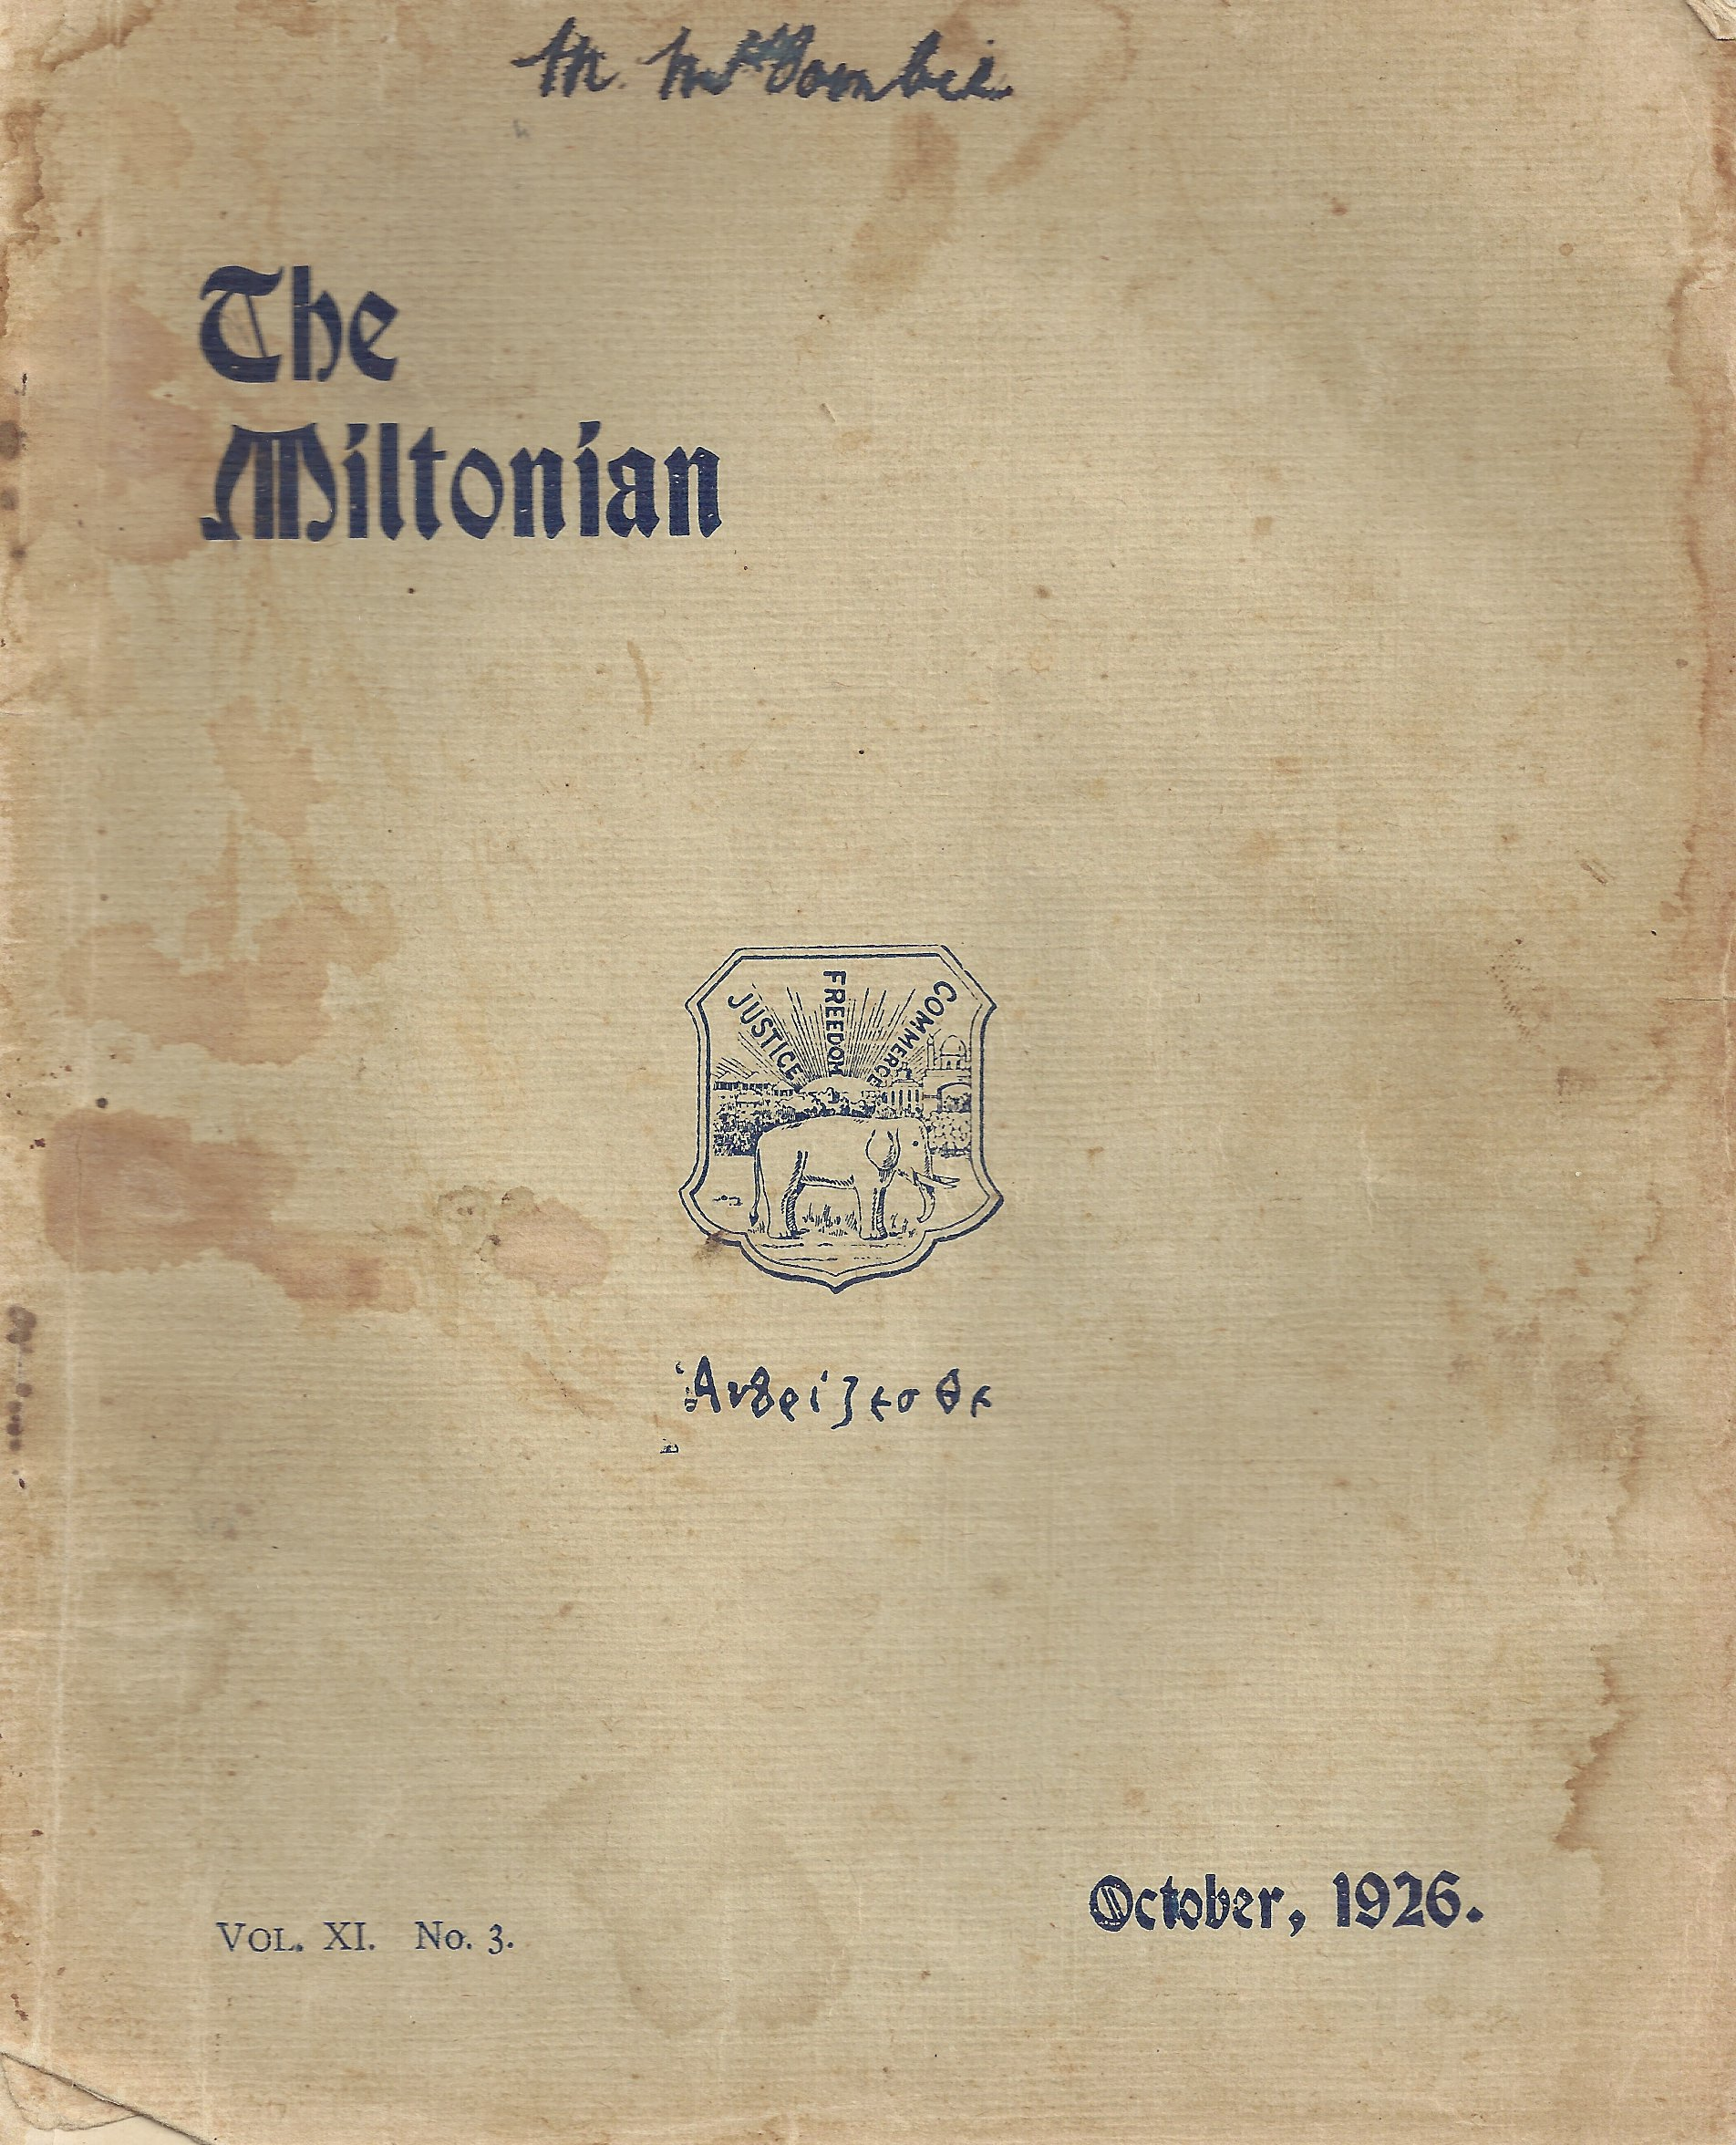 file:///C:/Users/AdrianMM/Documents/My Web S1926_cover